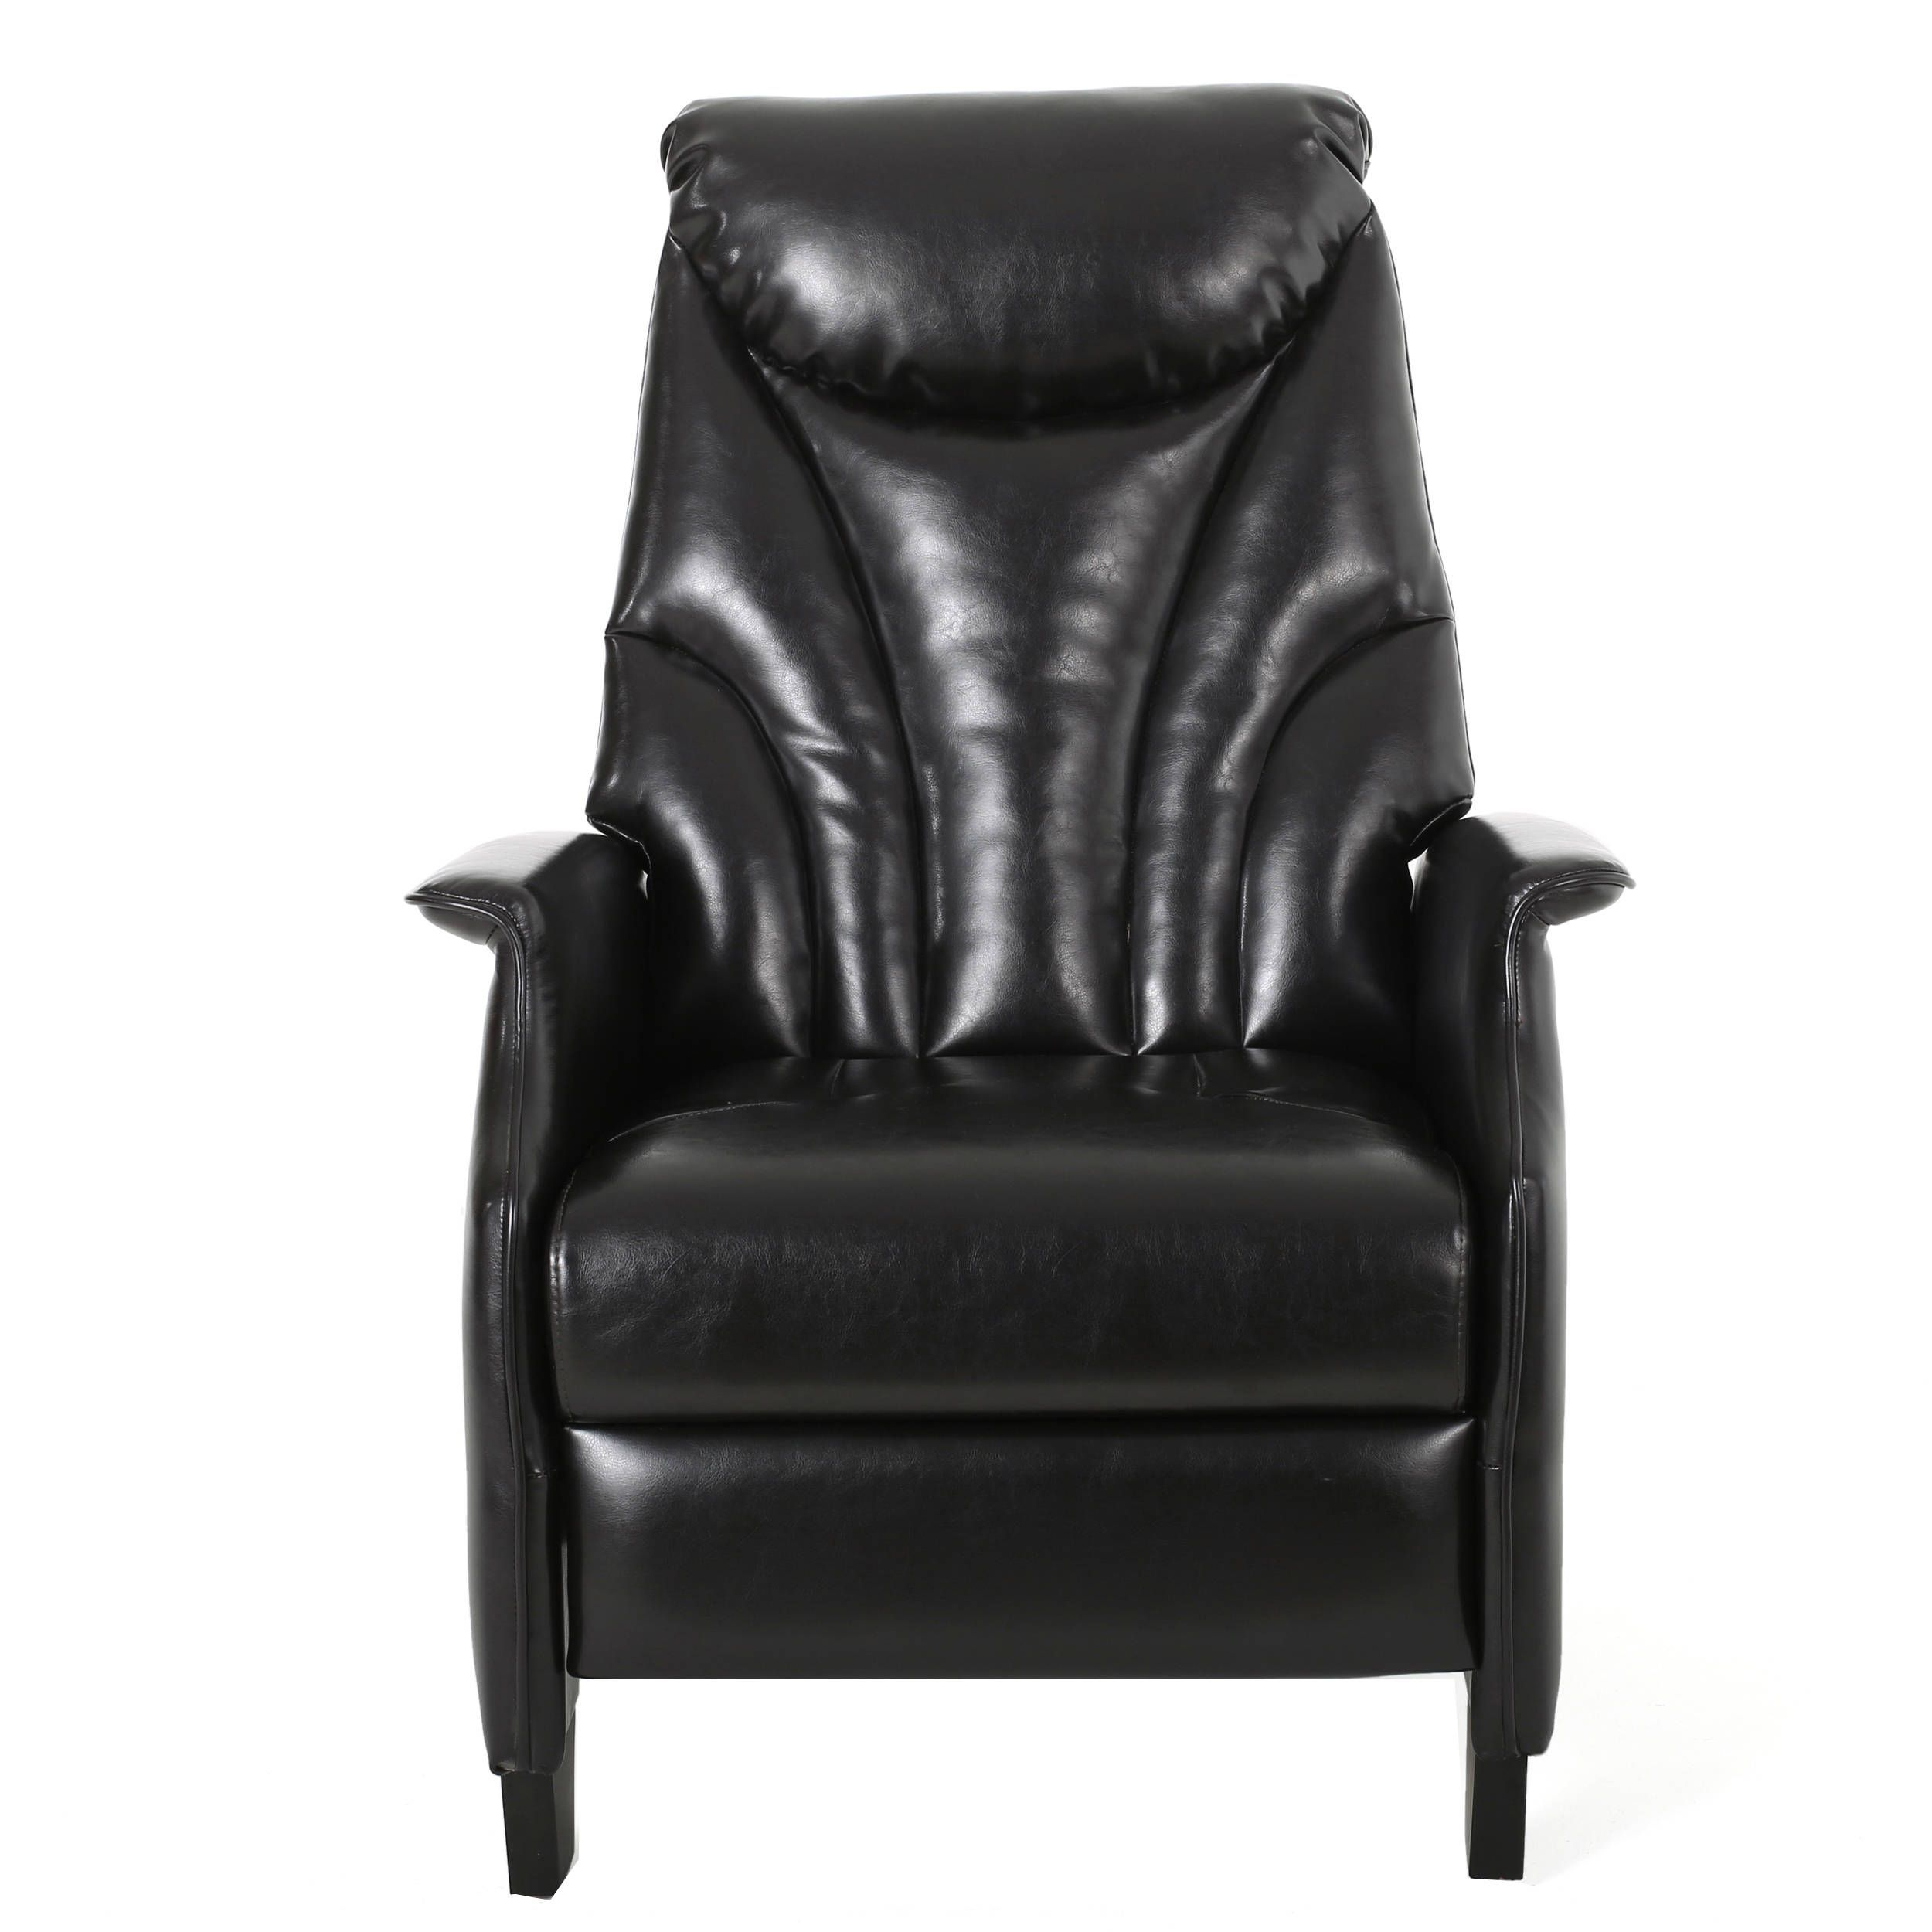 Alastair Stitched Bonded Leather Recliner Club Chair By Christopher Knight  Home (Brown), Size Standard